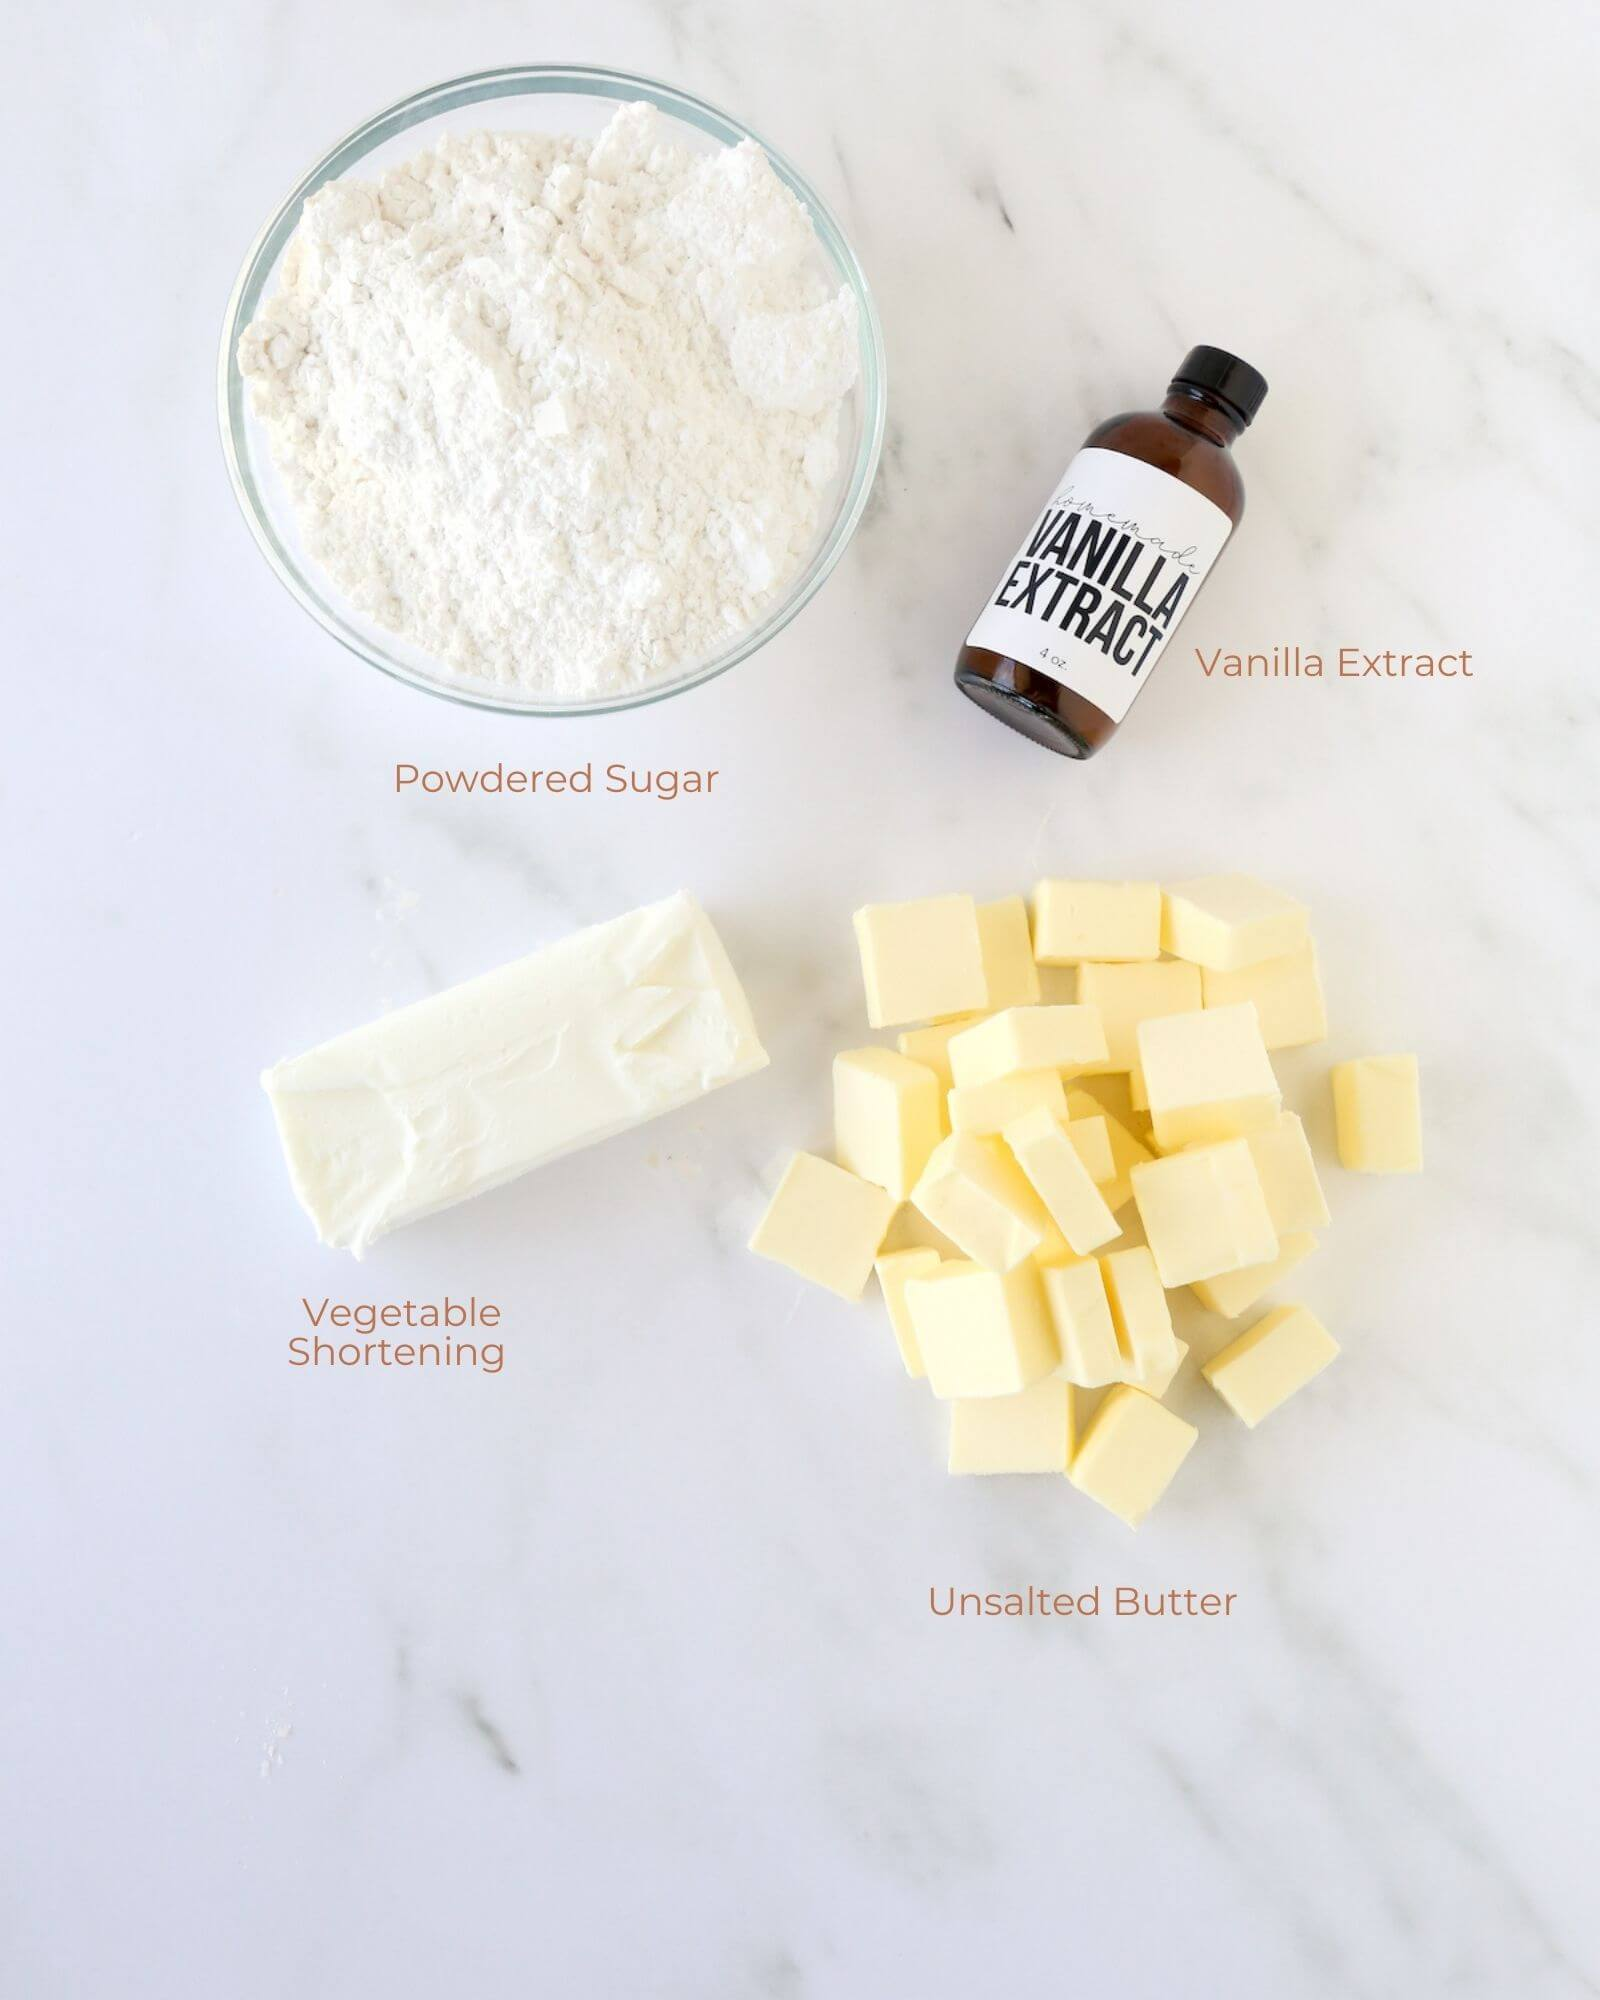 A bowl of powdered sugar, cubed butter, vegetable shortening and a bottle of vanilla extract.